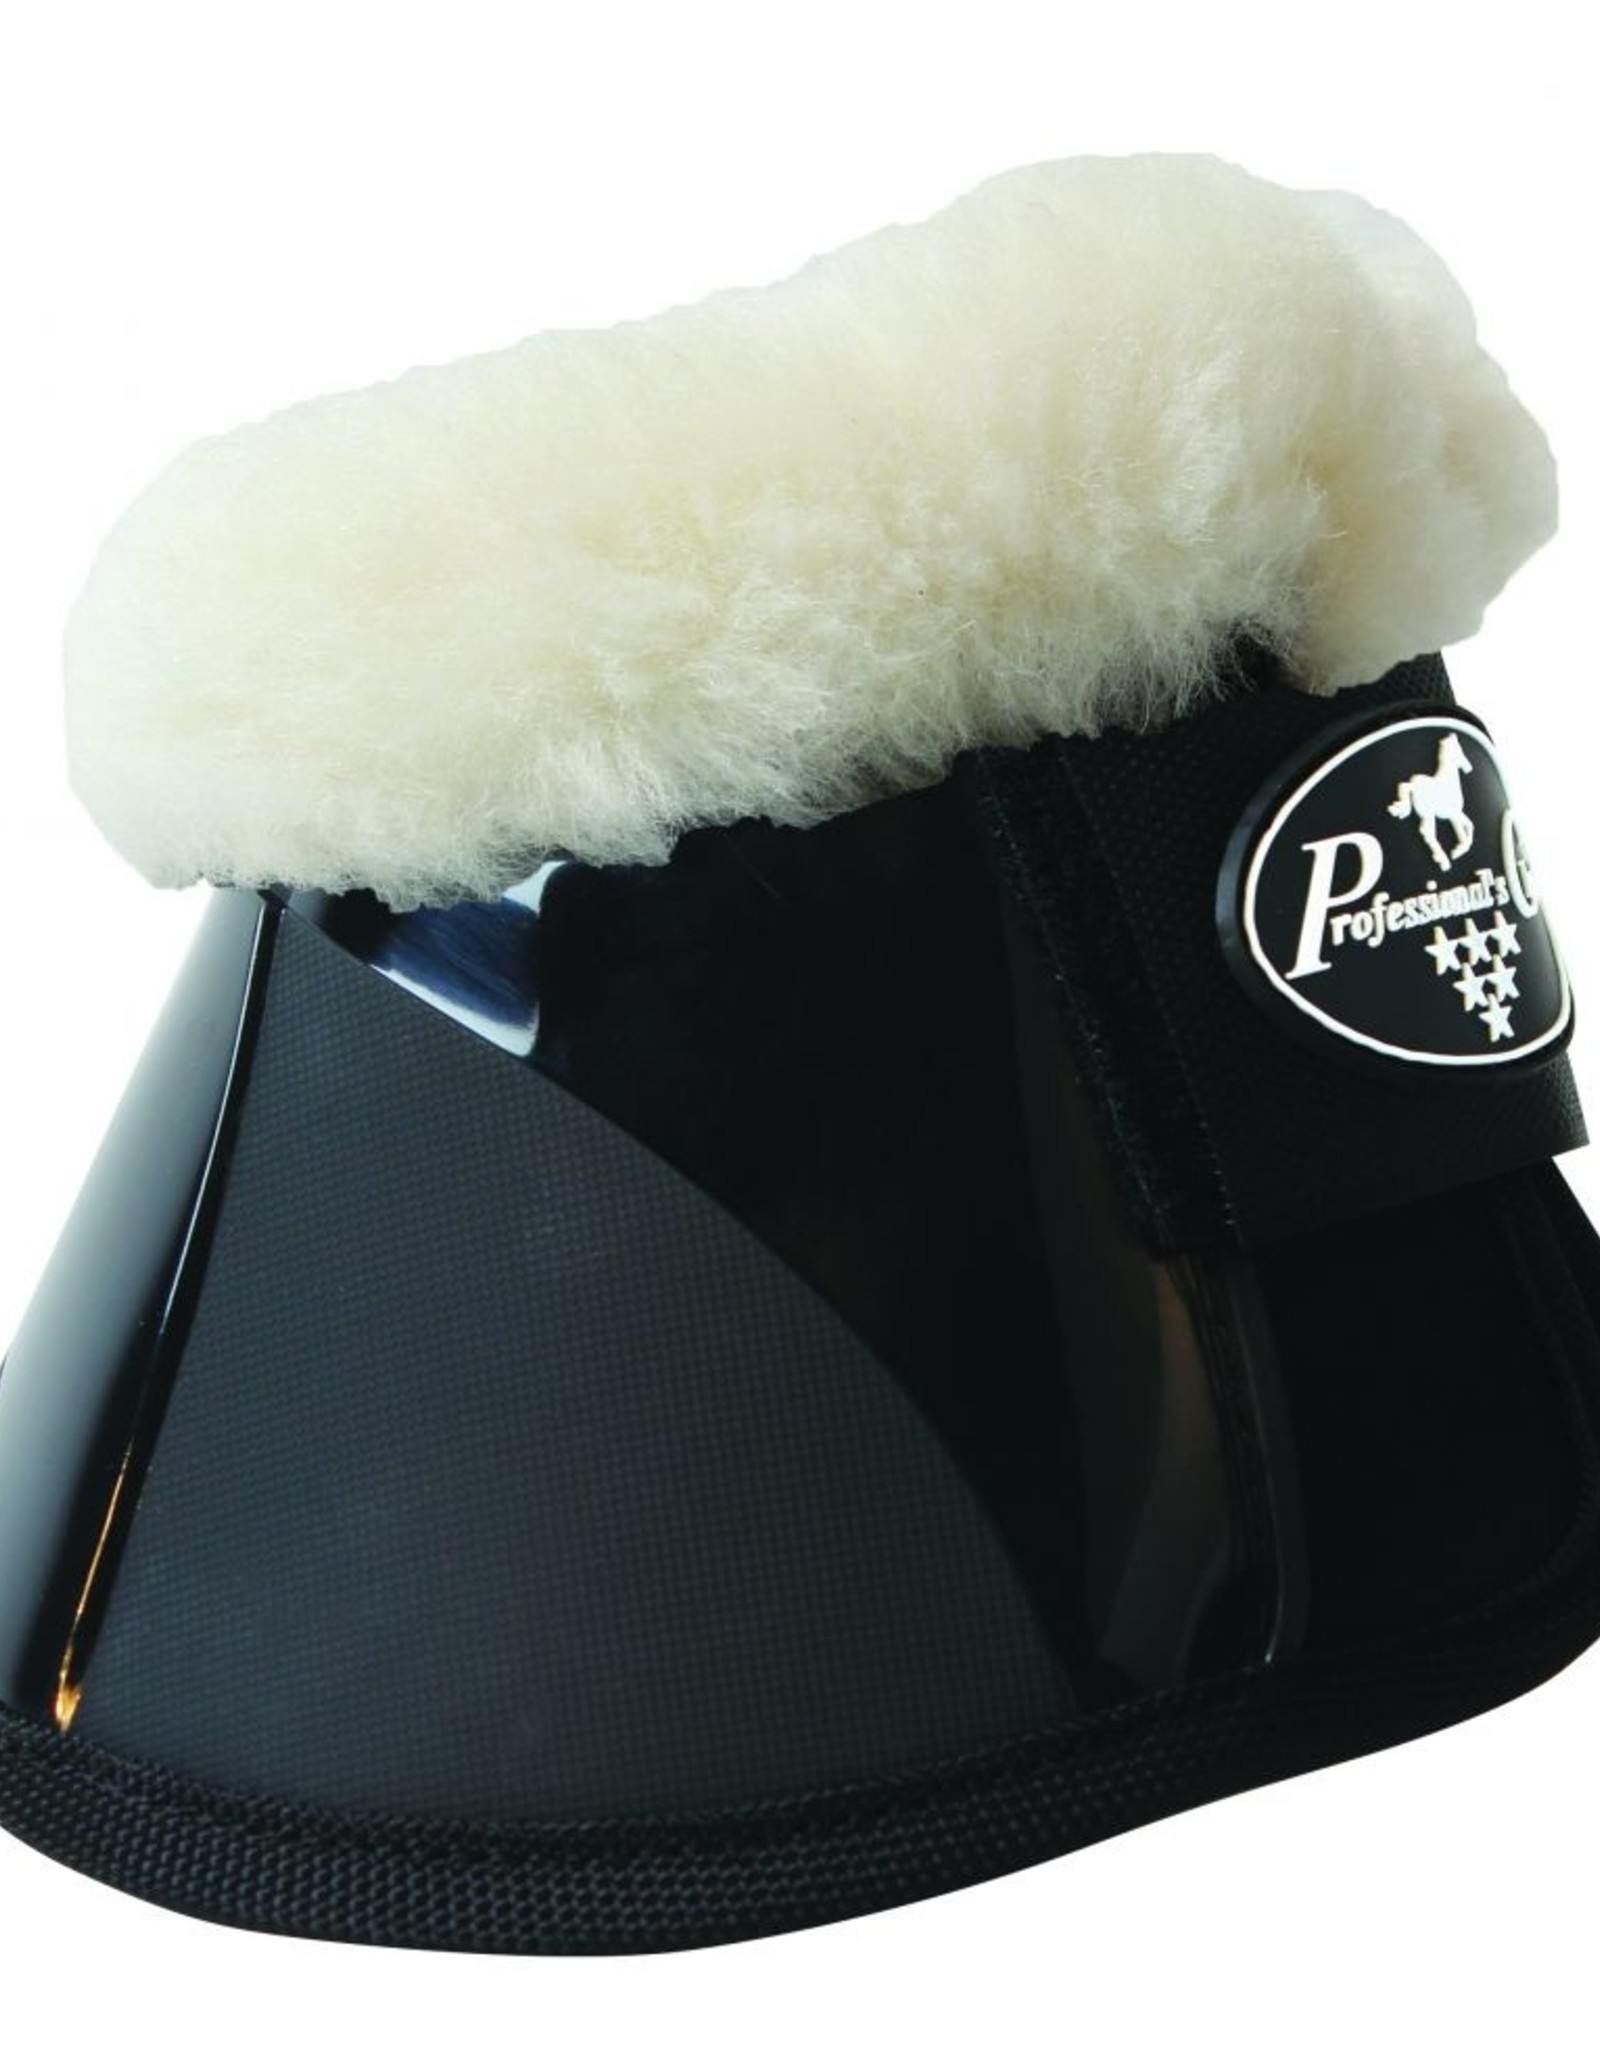 PROFESSIONAL'S CHOICE SPARTAIN BELL BOOT WITH FLEECE